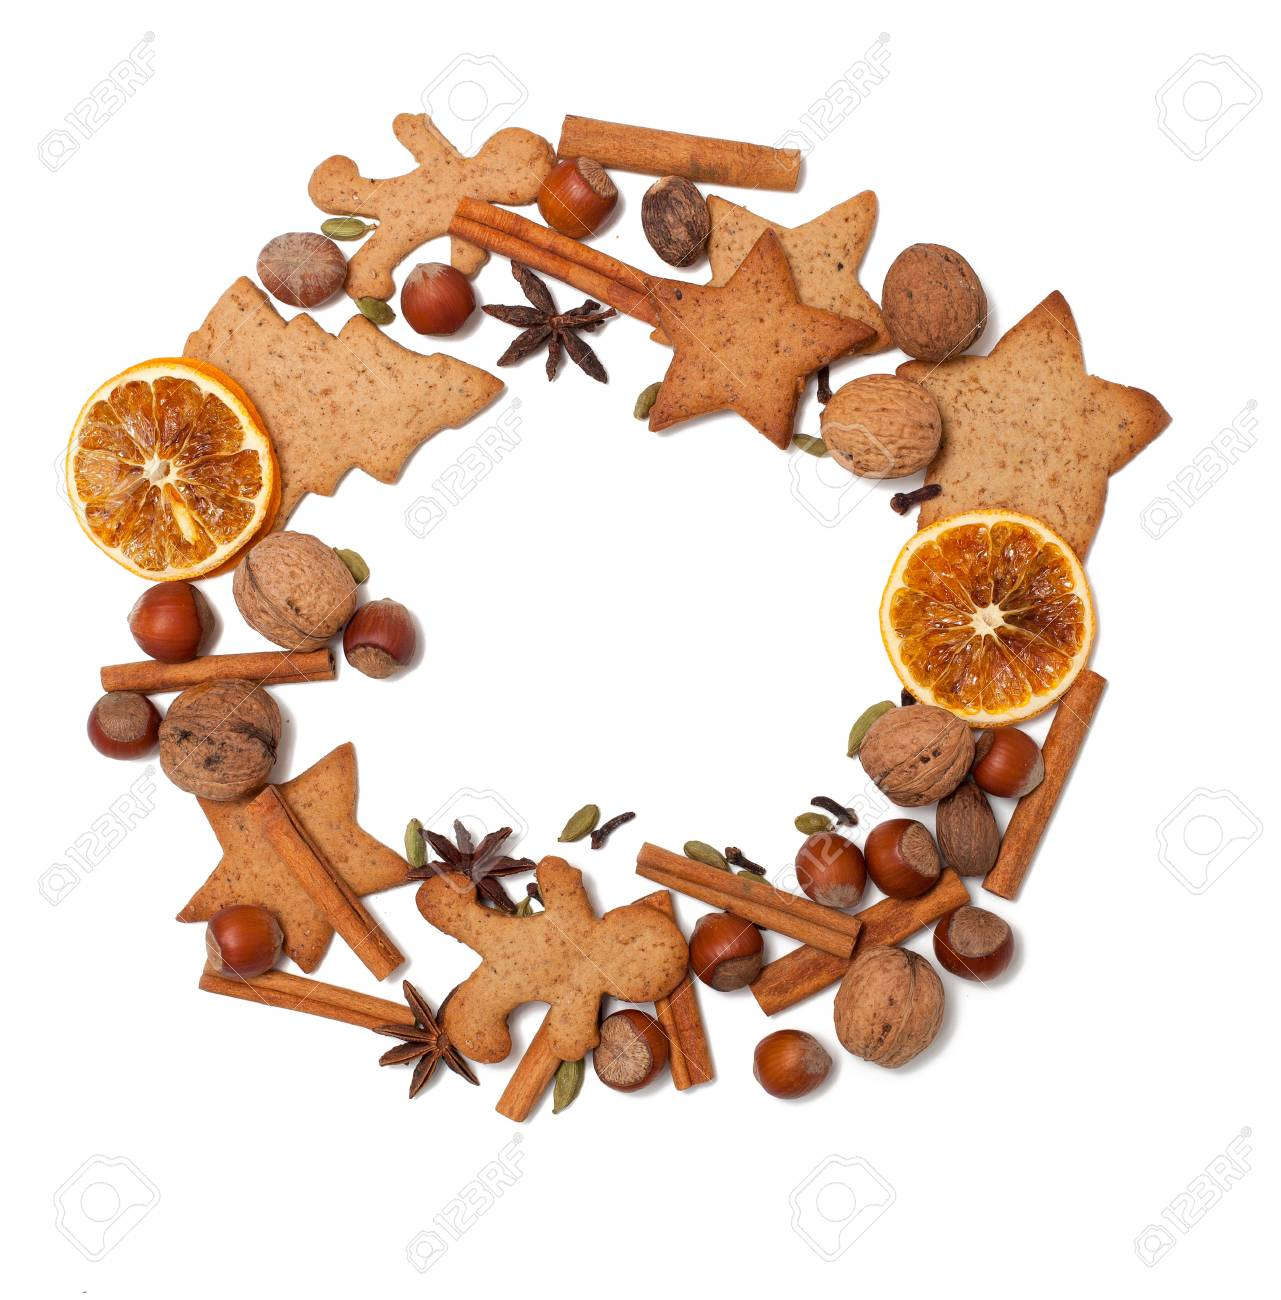 Christmas cookies and spices border Stock Photo - 20674682